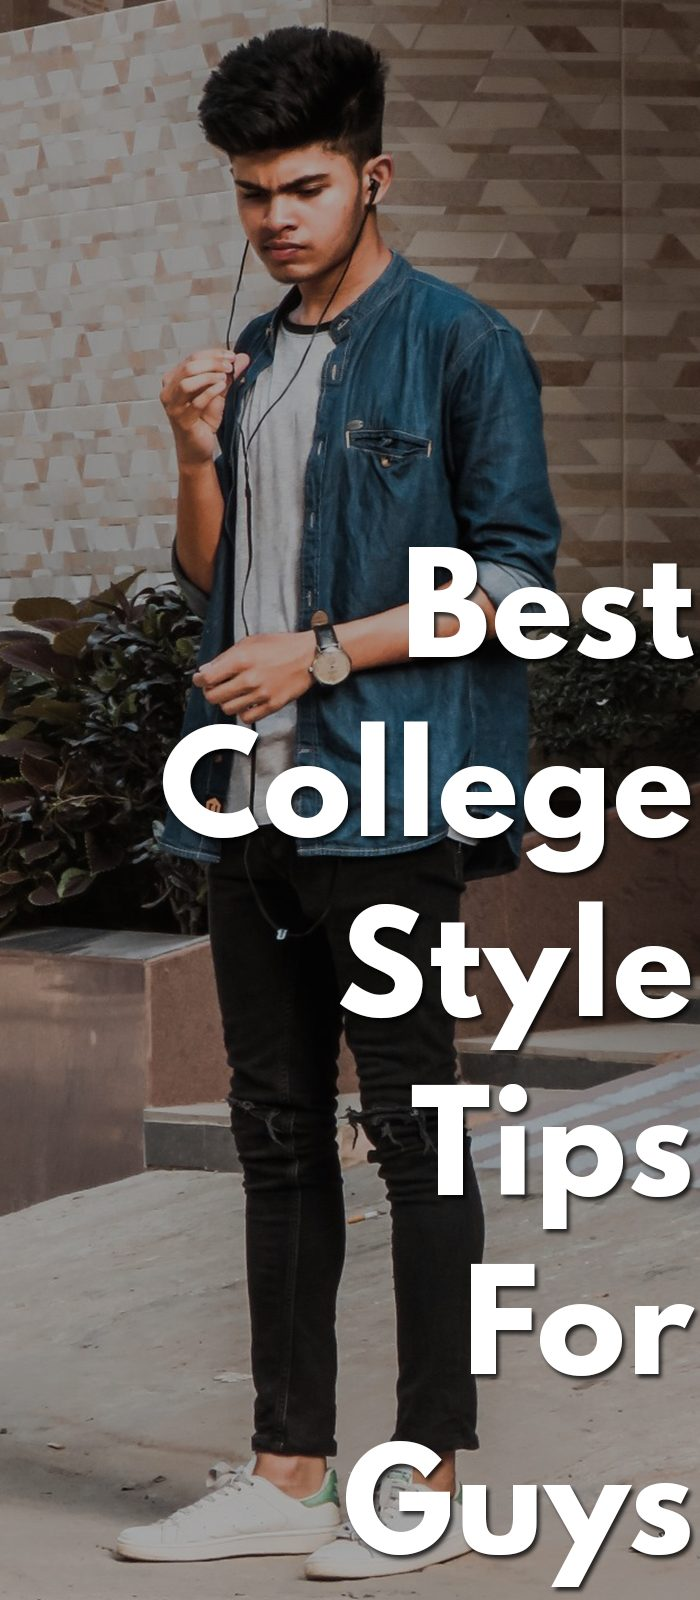 Best-College-Style-Tips-For-Guys..